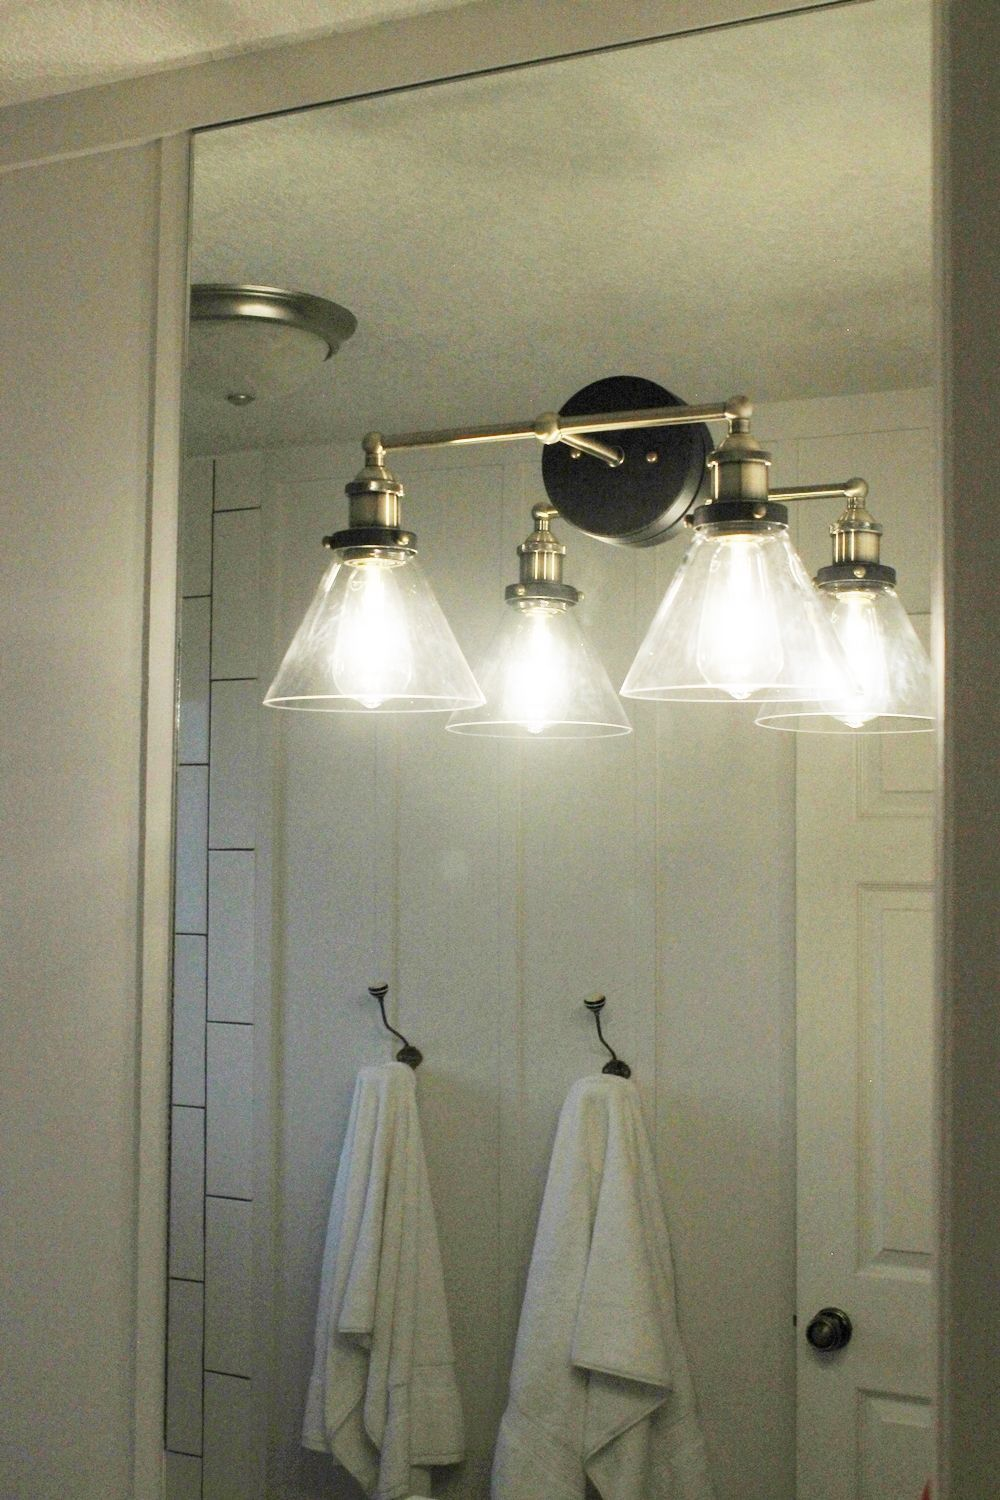 Electrical Wiring Bathroom Light Fixture